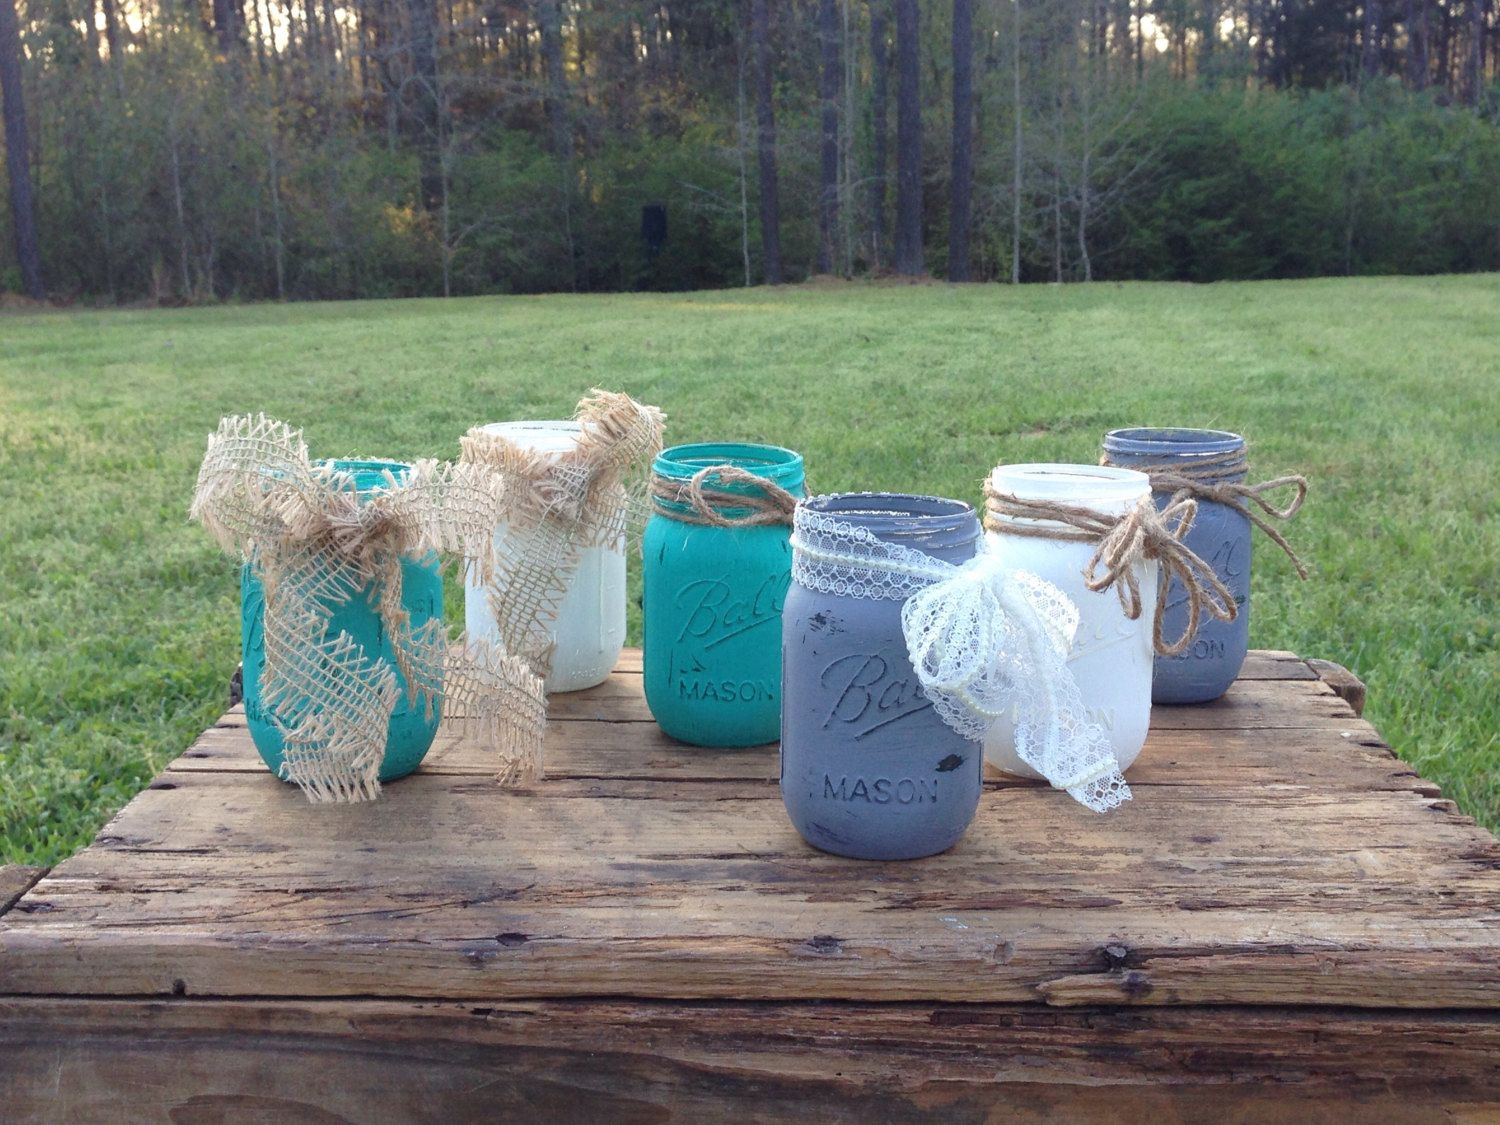 Painted Pint Mason Jars, Rustic Decor by HowItOnceWas on Etsy https://www.etsy.com/listing/227971757/painted-pint-mason-jars-rustic-decor